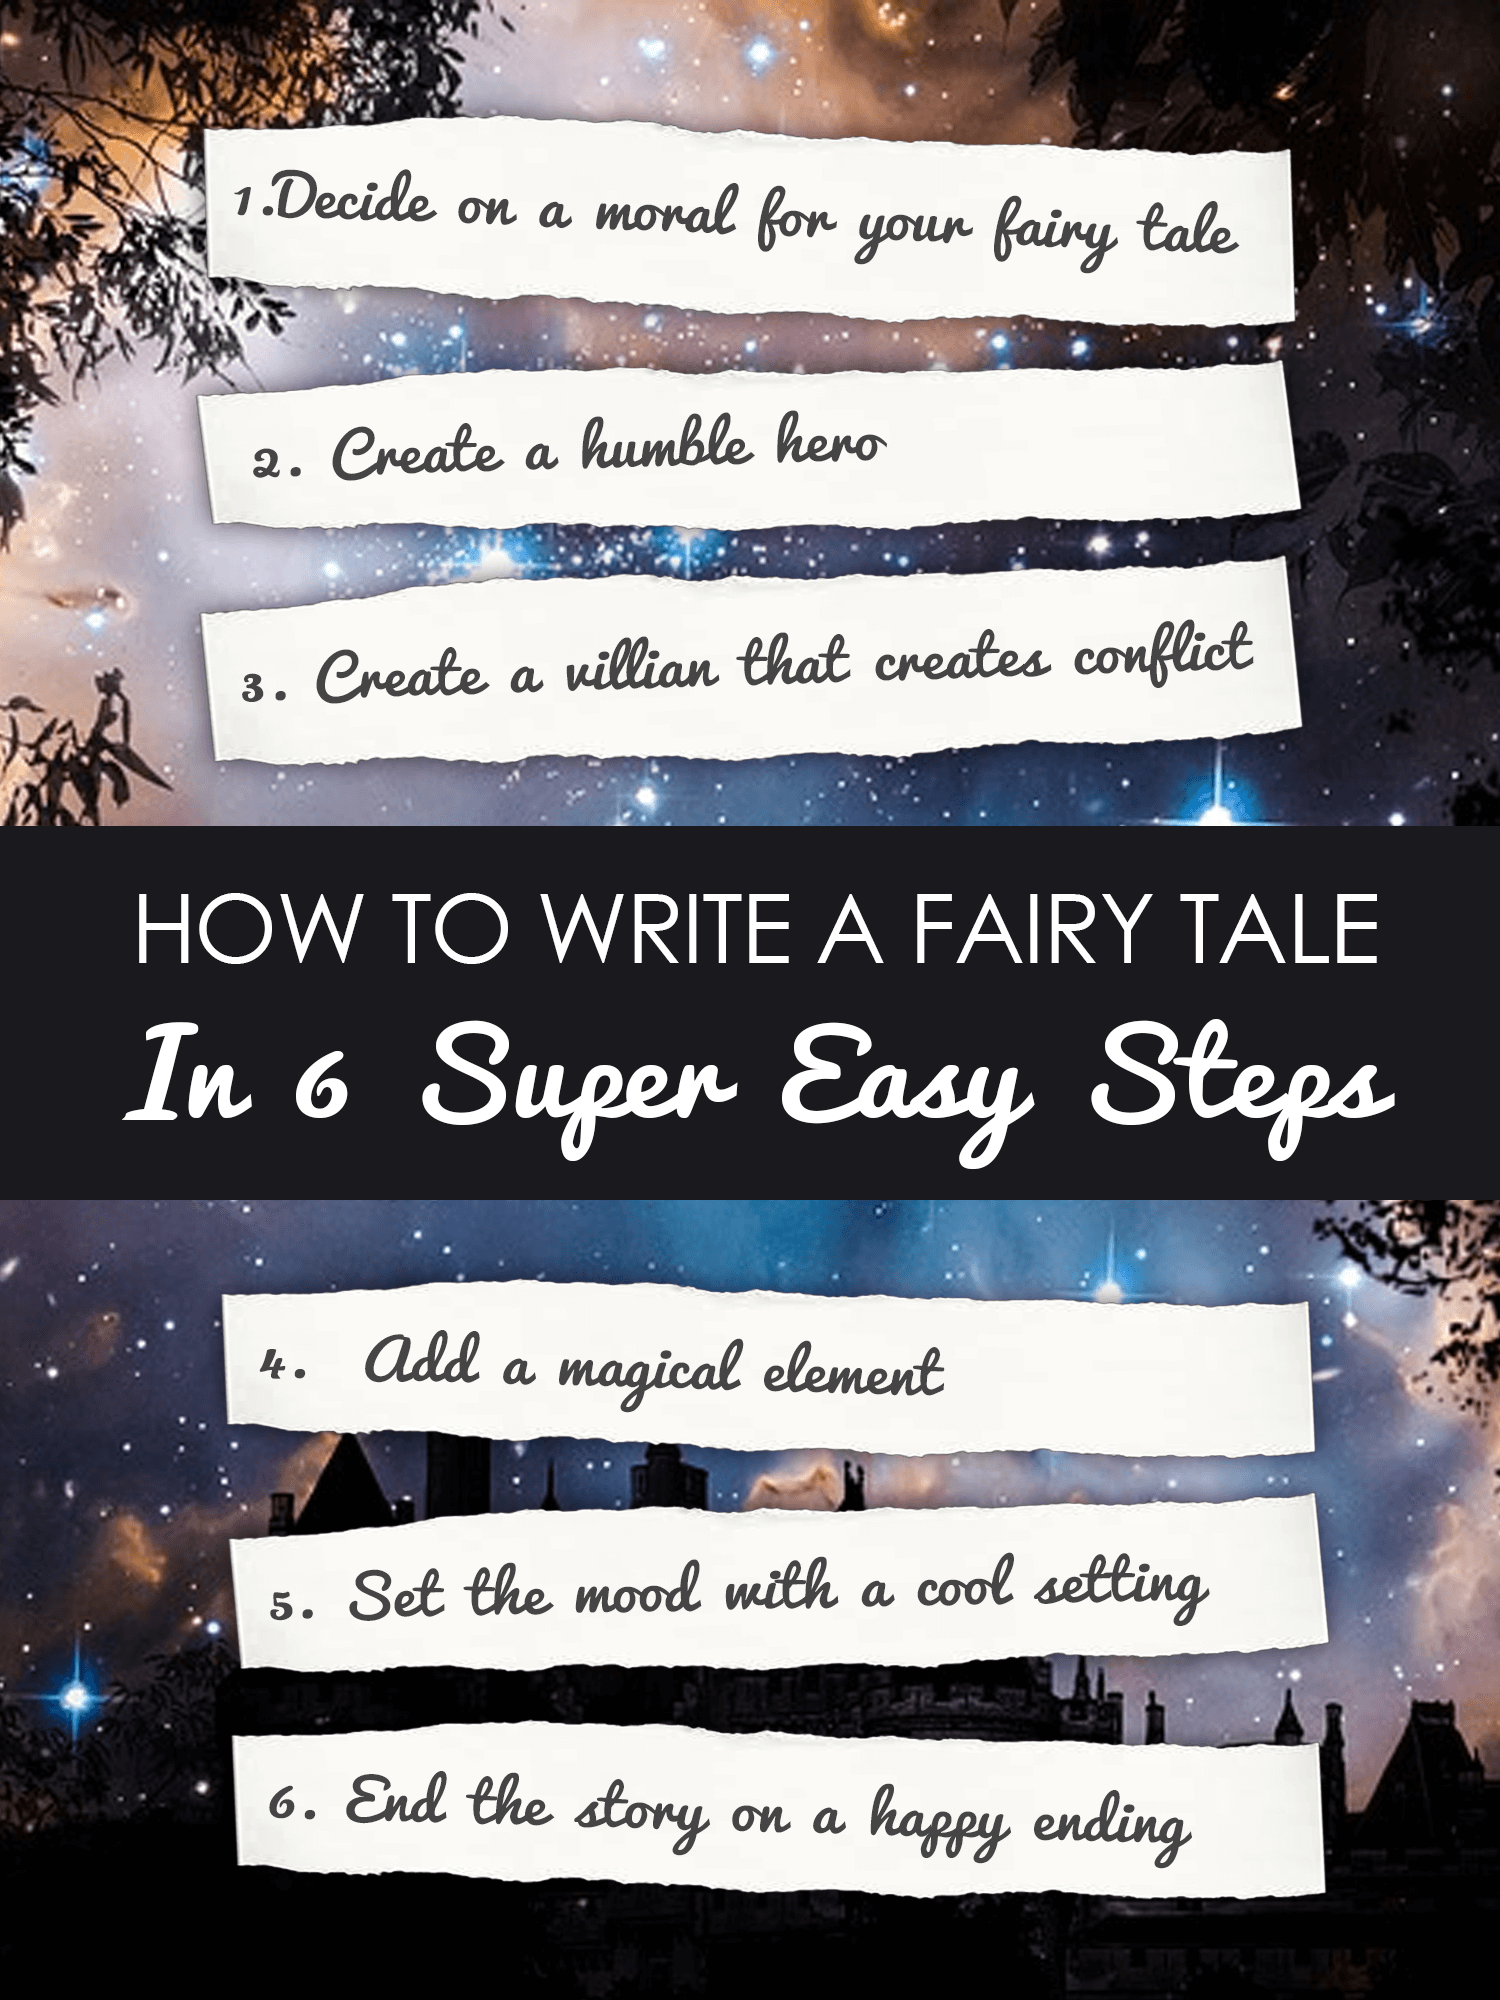 How to Write a Fairy Tale in 6 Steps imagine forest